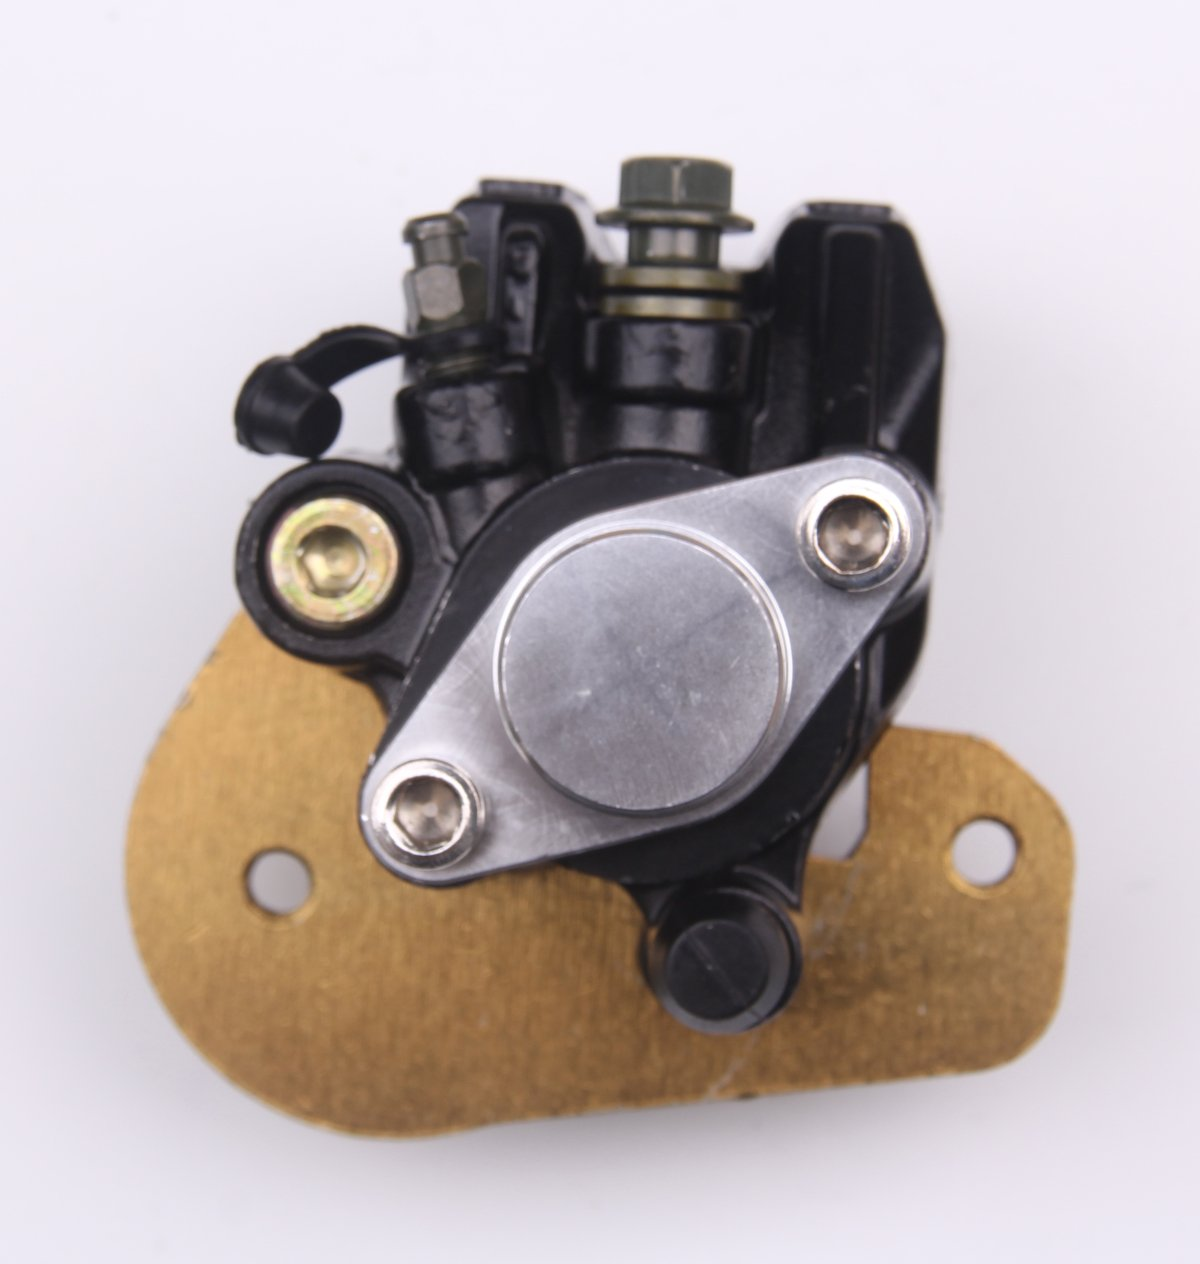 New Rear Brake Caliper For Honda Sportrax 400 TRX400EX TRX 400X 05-14 With Pads by Goodbest (Image #4)